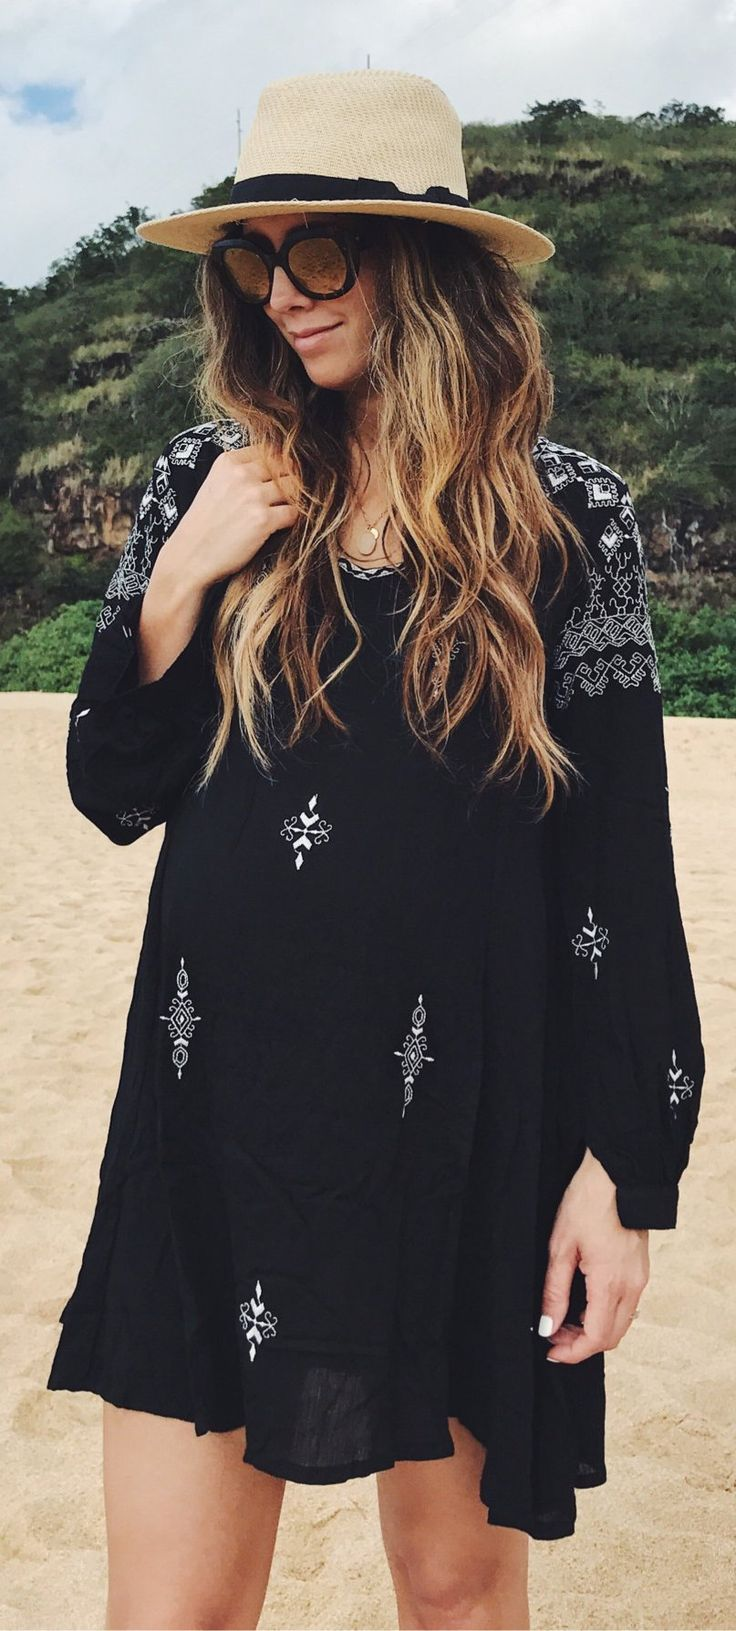 Black Printed Dress / Beach HatWOMEN'S RAGA EMBROIDERED DRESS Black Nordstrom  Trending Summer Spring Fashion Outfit to Try This 2017 Great for Wedding,casual,Flowy,Black,Maxi,Idea,Party,Cocktail,Hippe,Fashion,Elegant,Chic,Bohemian,Hippie,Gypsy,Floral